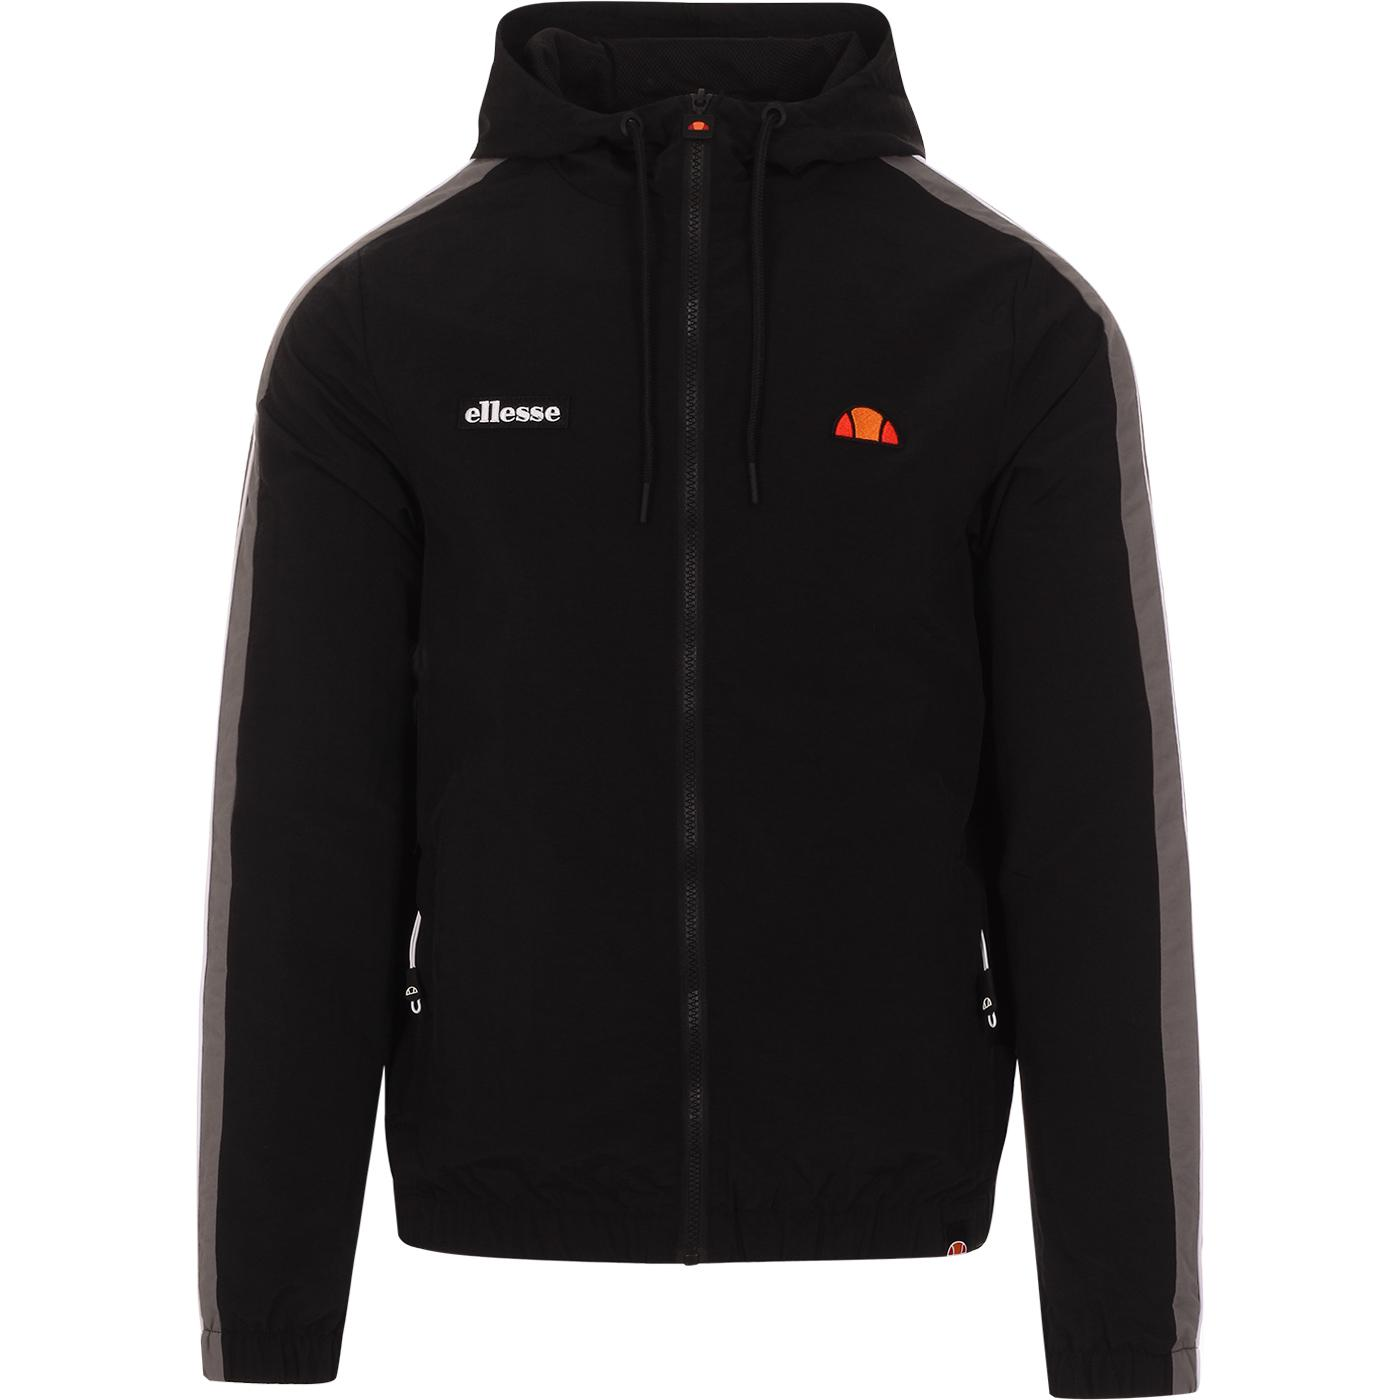 Fairchild ELLESSE Hooded Windbreaker Track Jacket